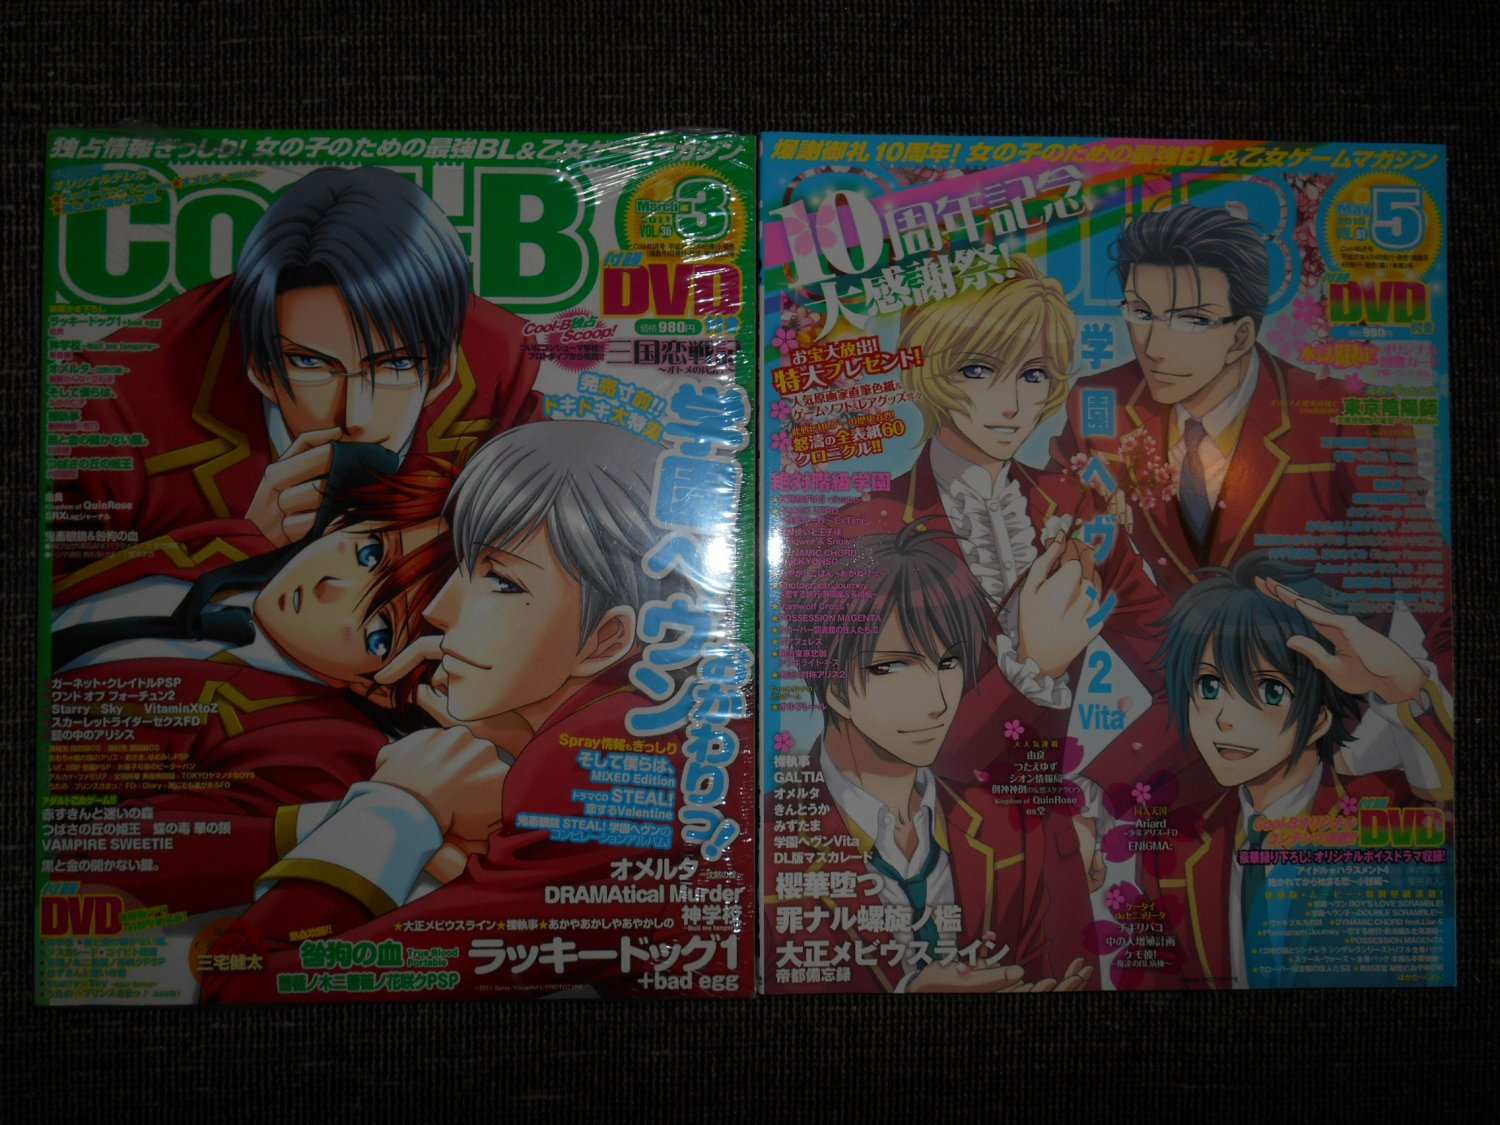 Cool B Magazine - 2011/2015 - Yaoi Game - Colored Artwork - Gakuen Heaven: Boy's Love - New/Used